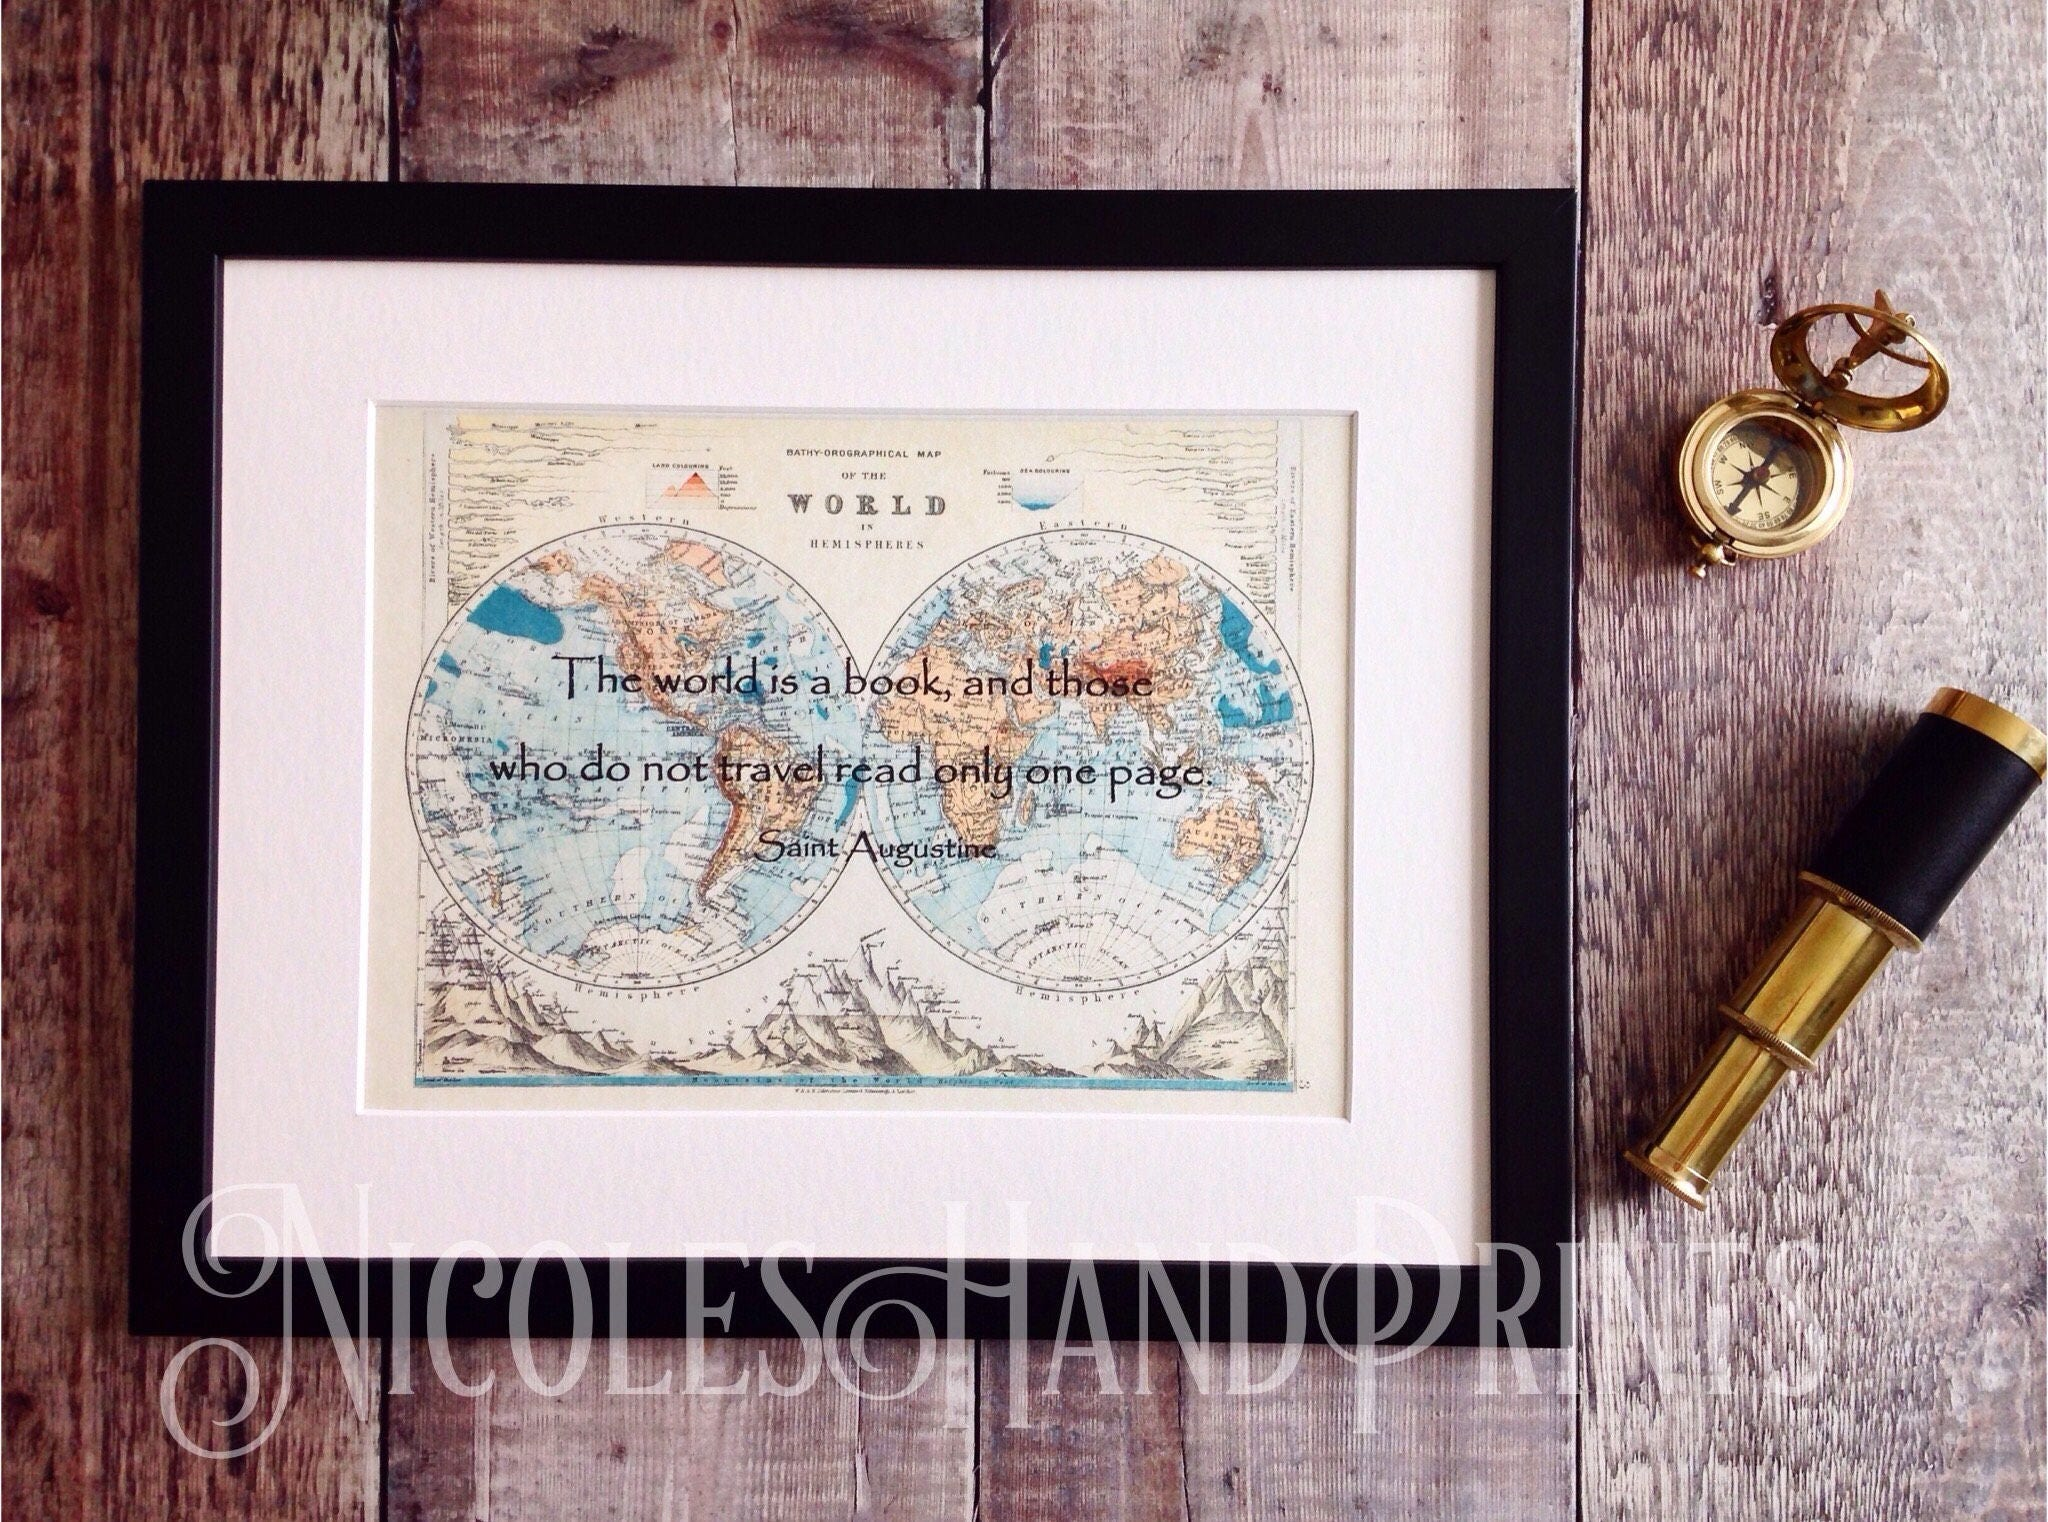 Old world map print travel quote the world is a book vintage old world map print travel quote the world is a book vintage world map travel poster travel gift st augustine custom world map print gumiabroncs Choice Image